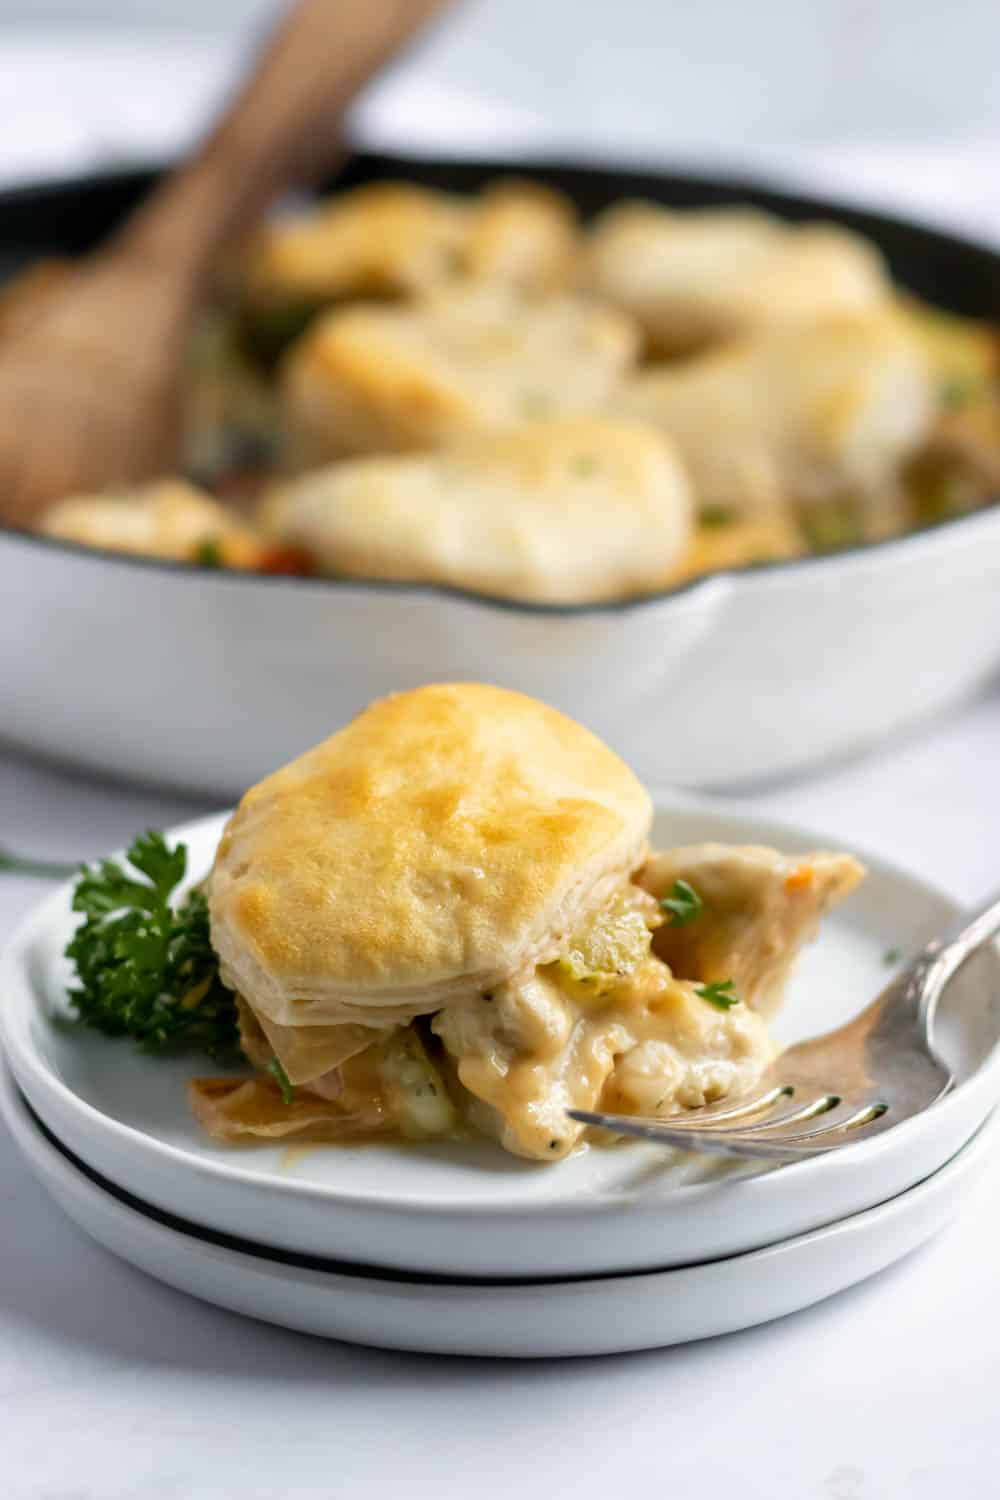 Chicken dinner on plate with biscuit topping.